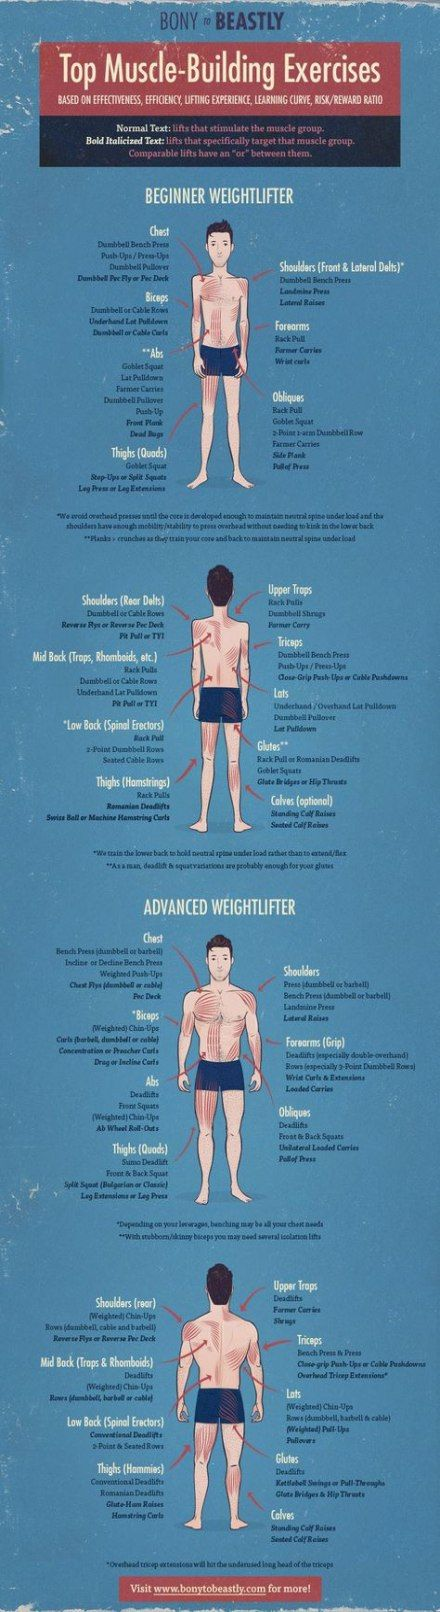 Fitness nutrition for men build muscle 32 ideas #fitness #nutrition